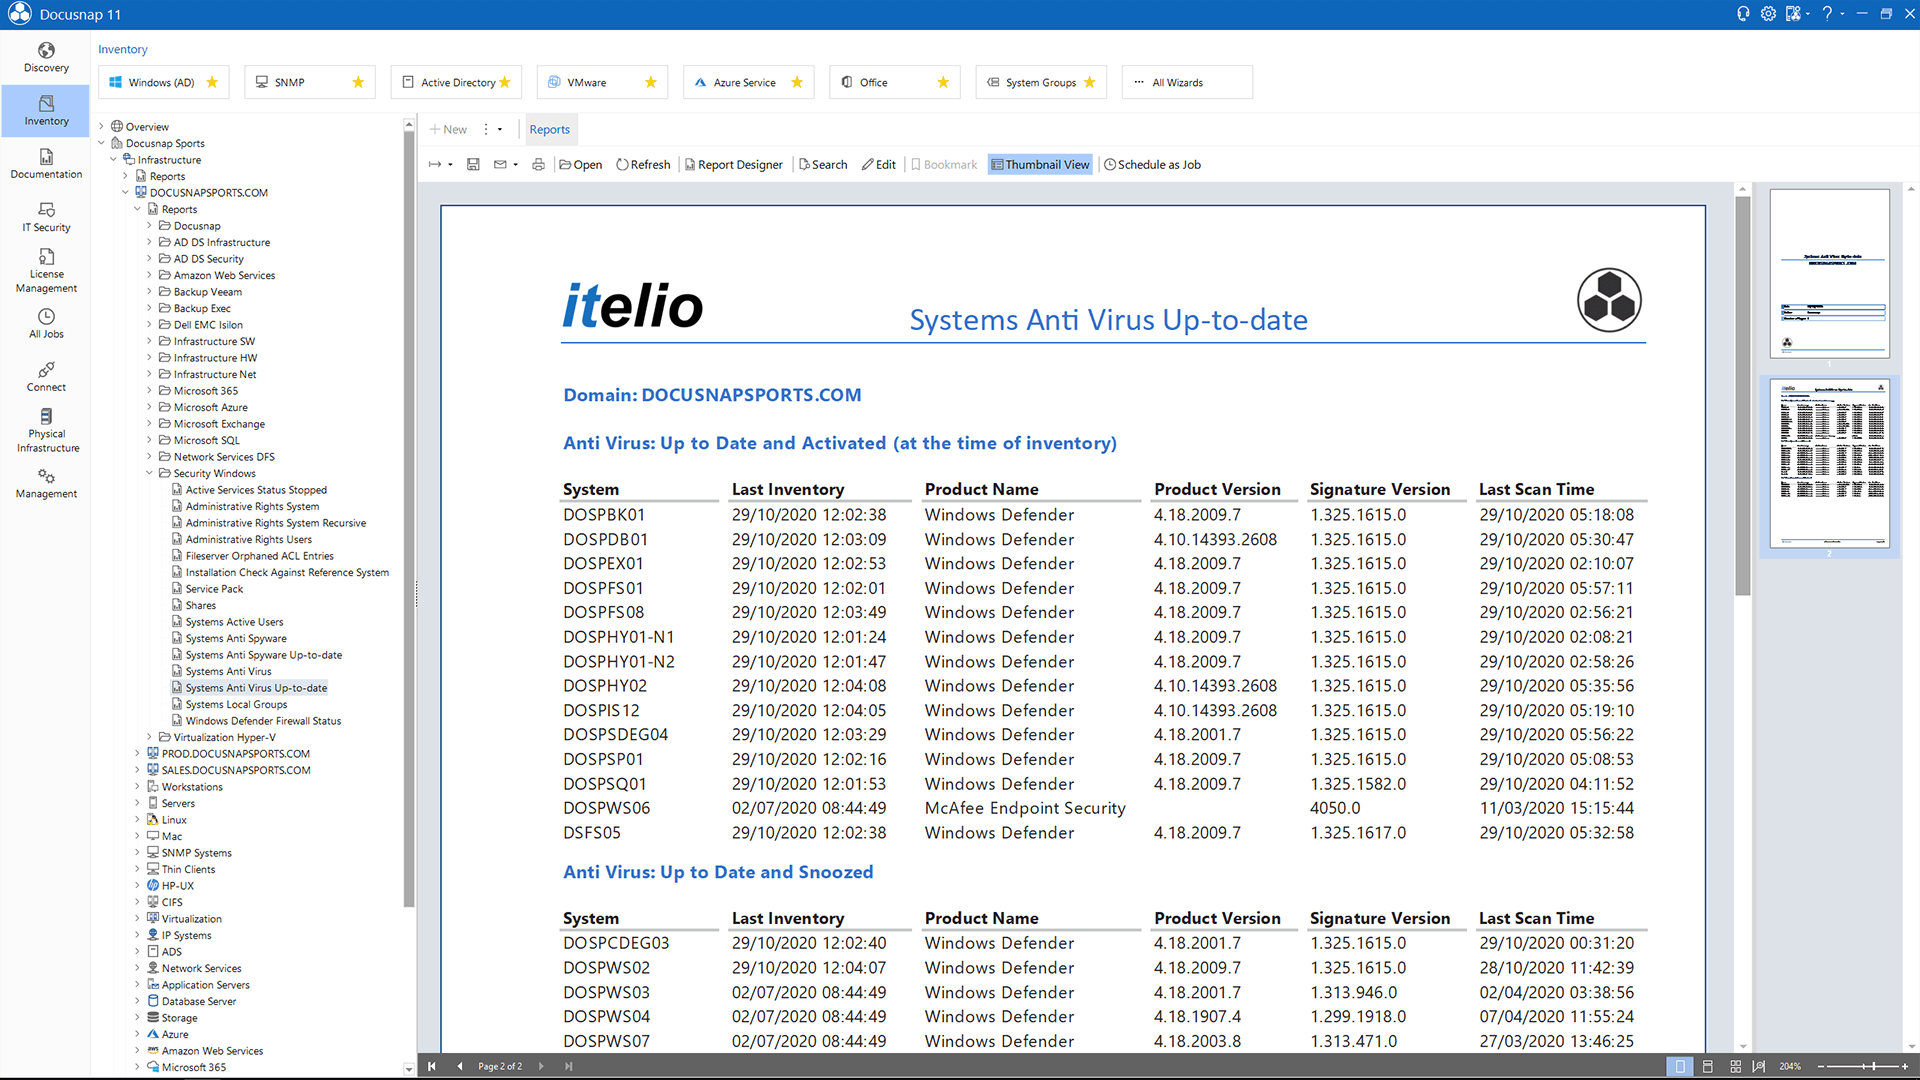 Screenshot: Report listing all virus scanners installed in the network, their status, and their patch revision number